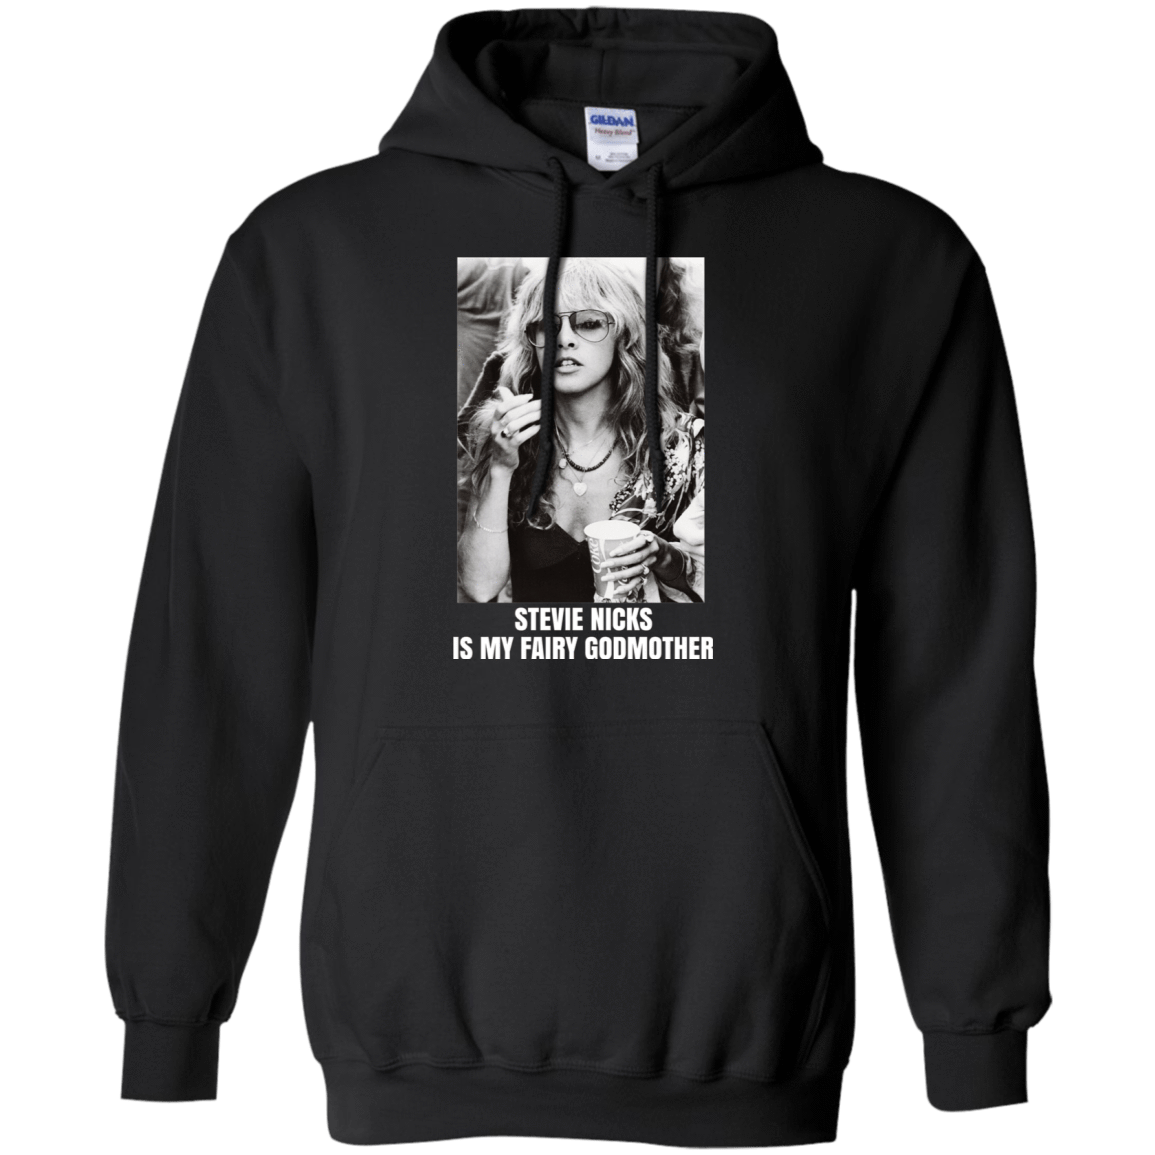 Stevie Nicks Is My Fairy Godmother T-Shirts, Hoodie, Tank 541-4740-78128274-23087 - Tee Ript